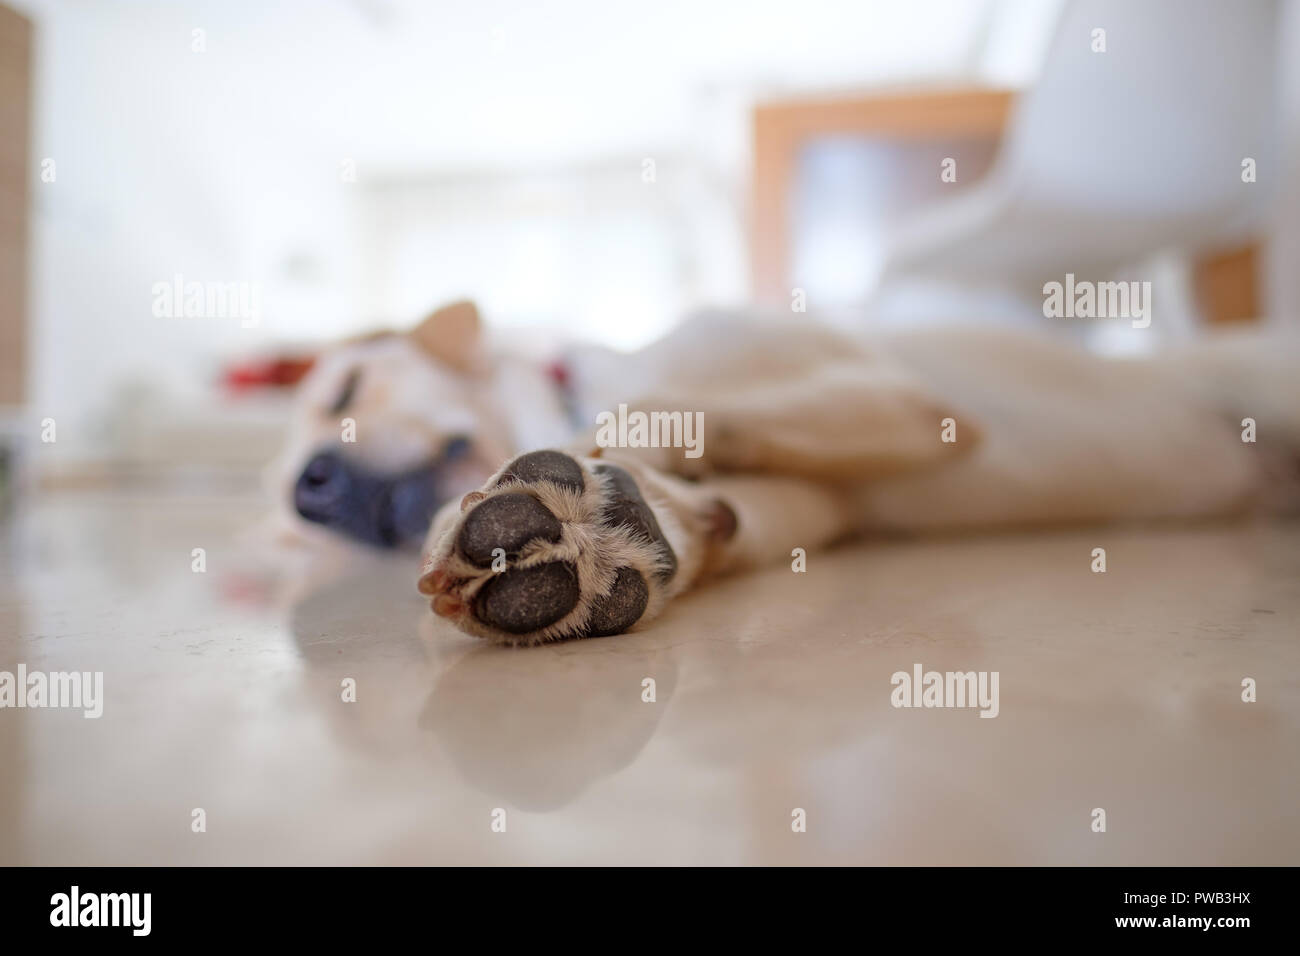 Selective focus close up photo of the paw of a yellow labrador retriever sleeping on the floor at home - Stock Image